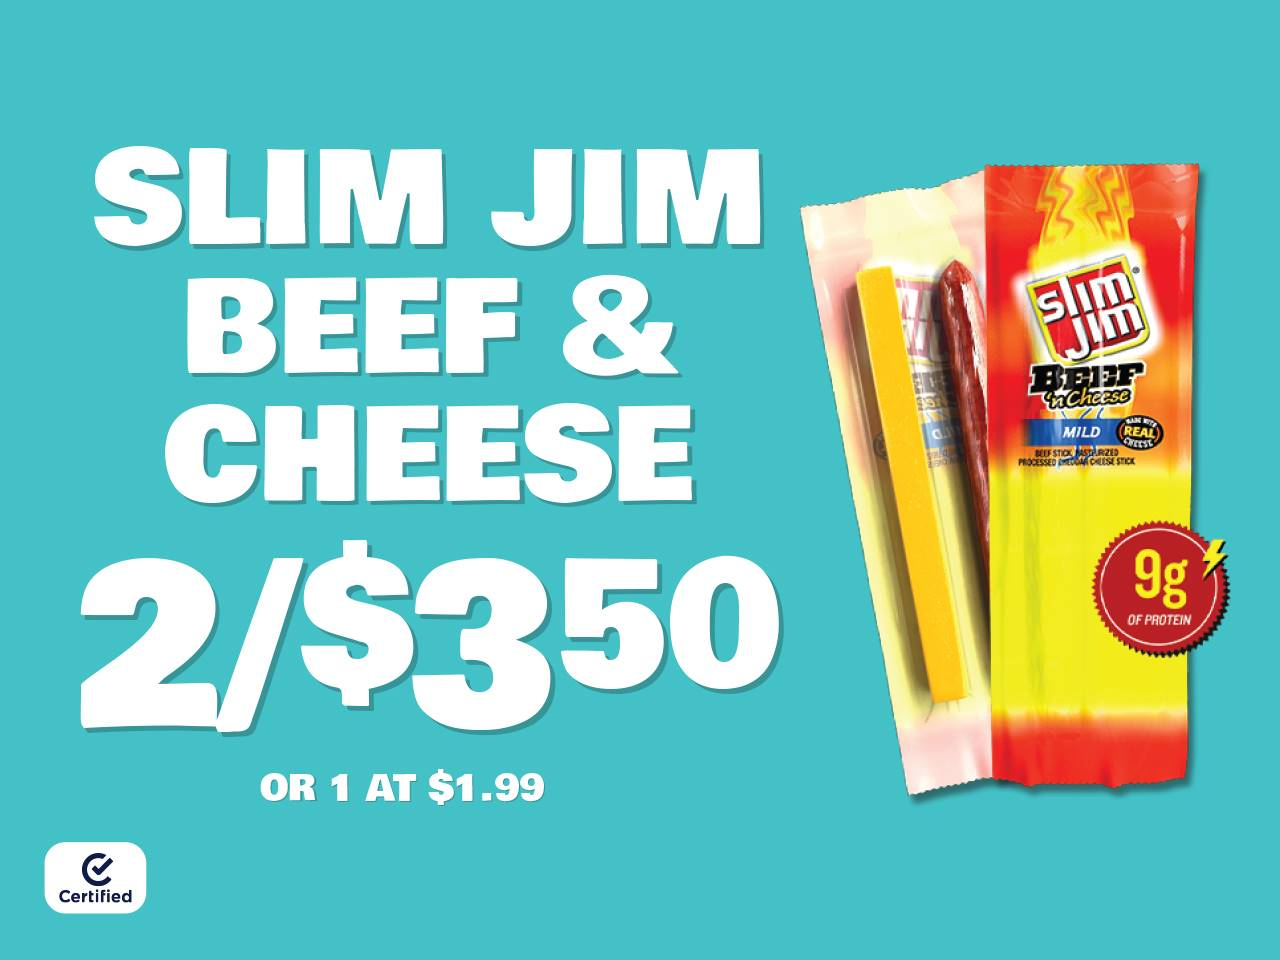 Slim Jim Beef & Cheese 2 for $3.50 or 1 at $1.99